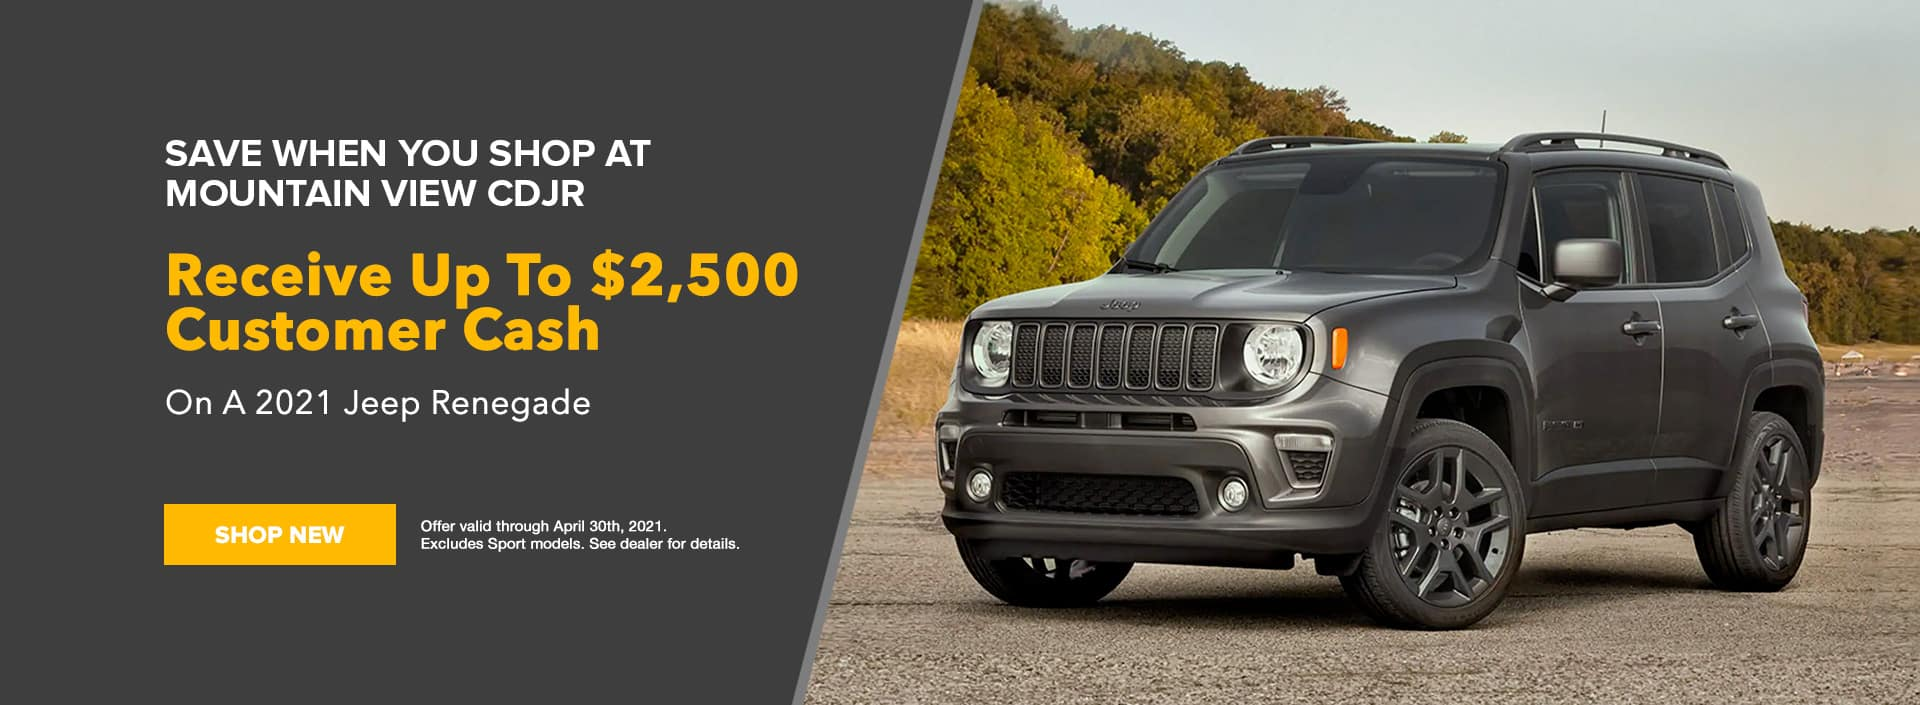 Jeep Renegade Offer